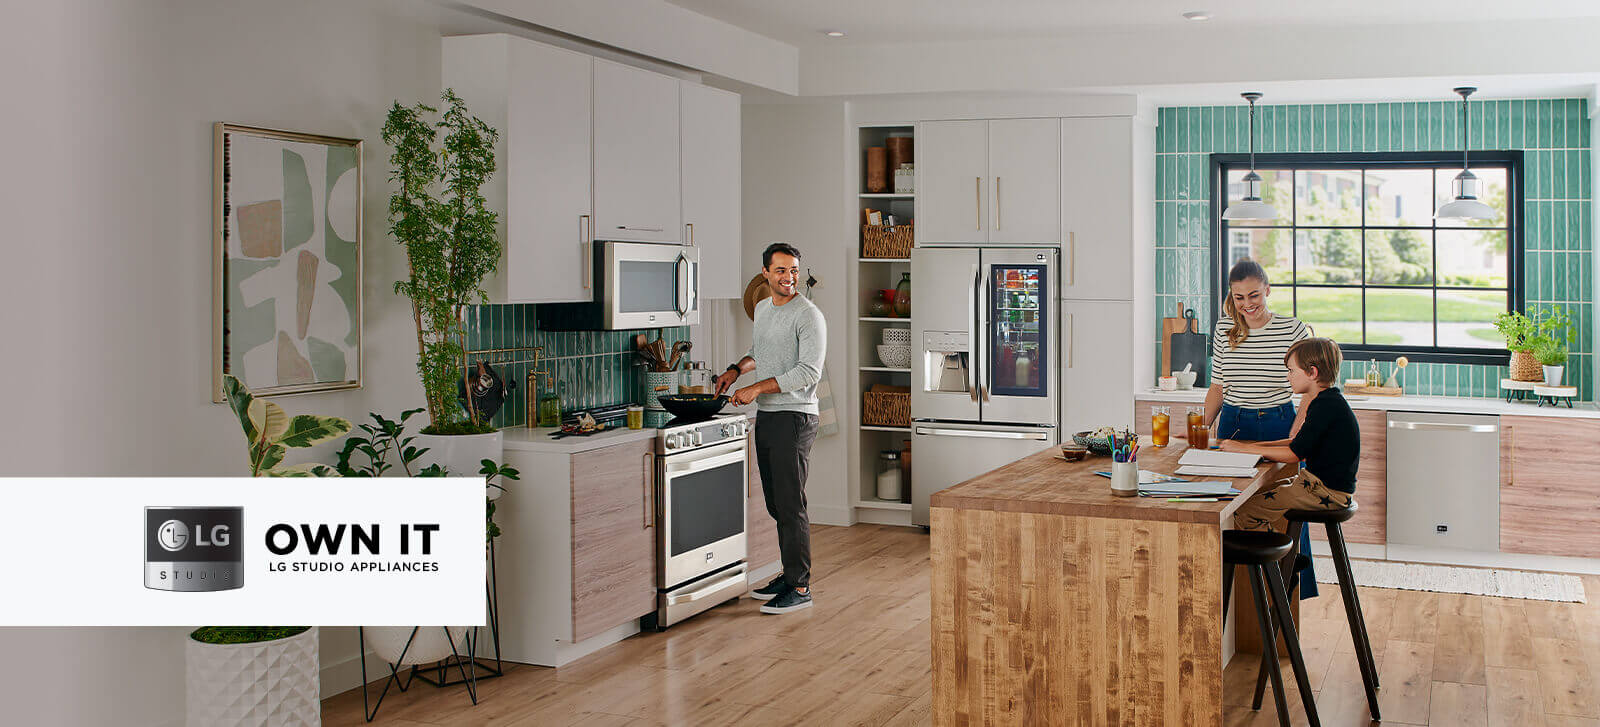 LG STUDIO - The Appliance Upgrade You Deserve